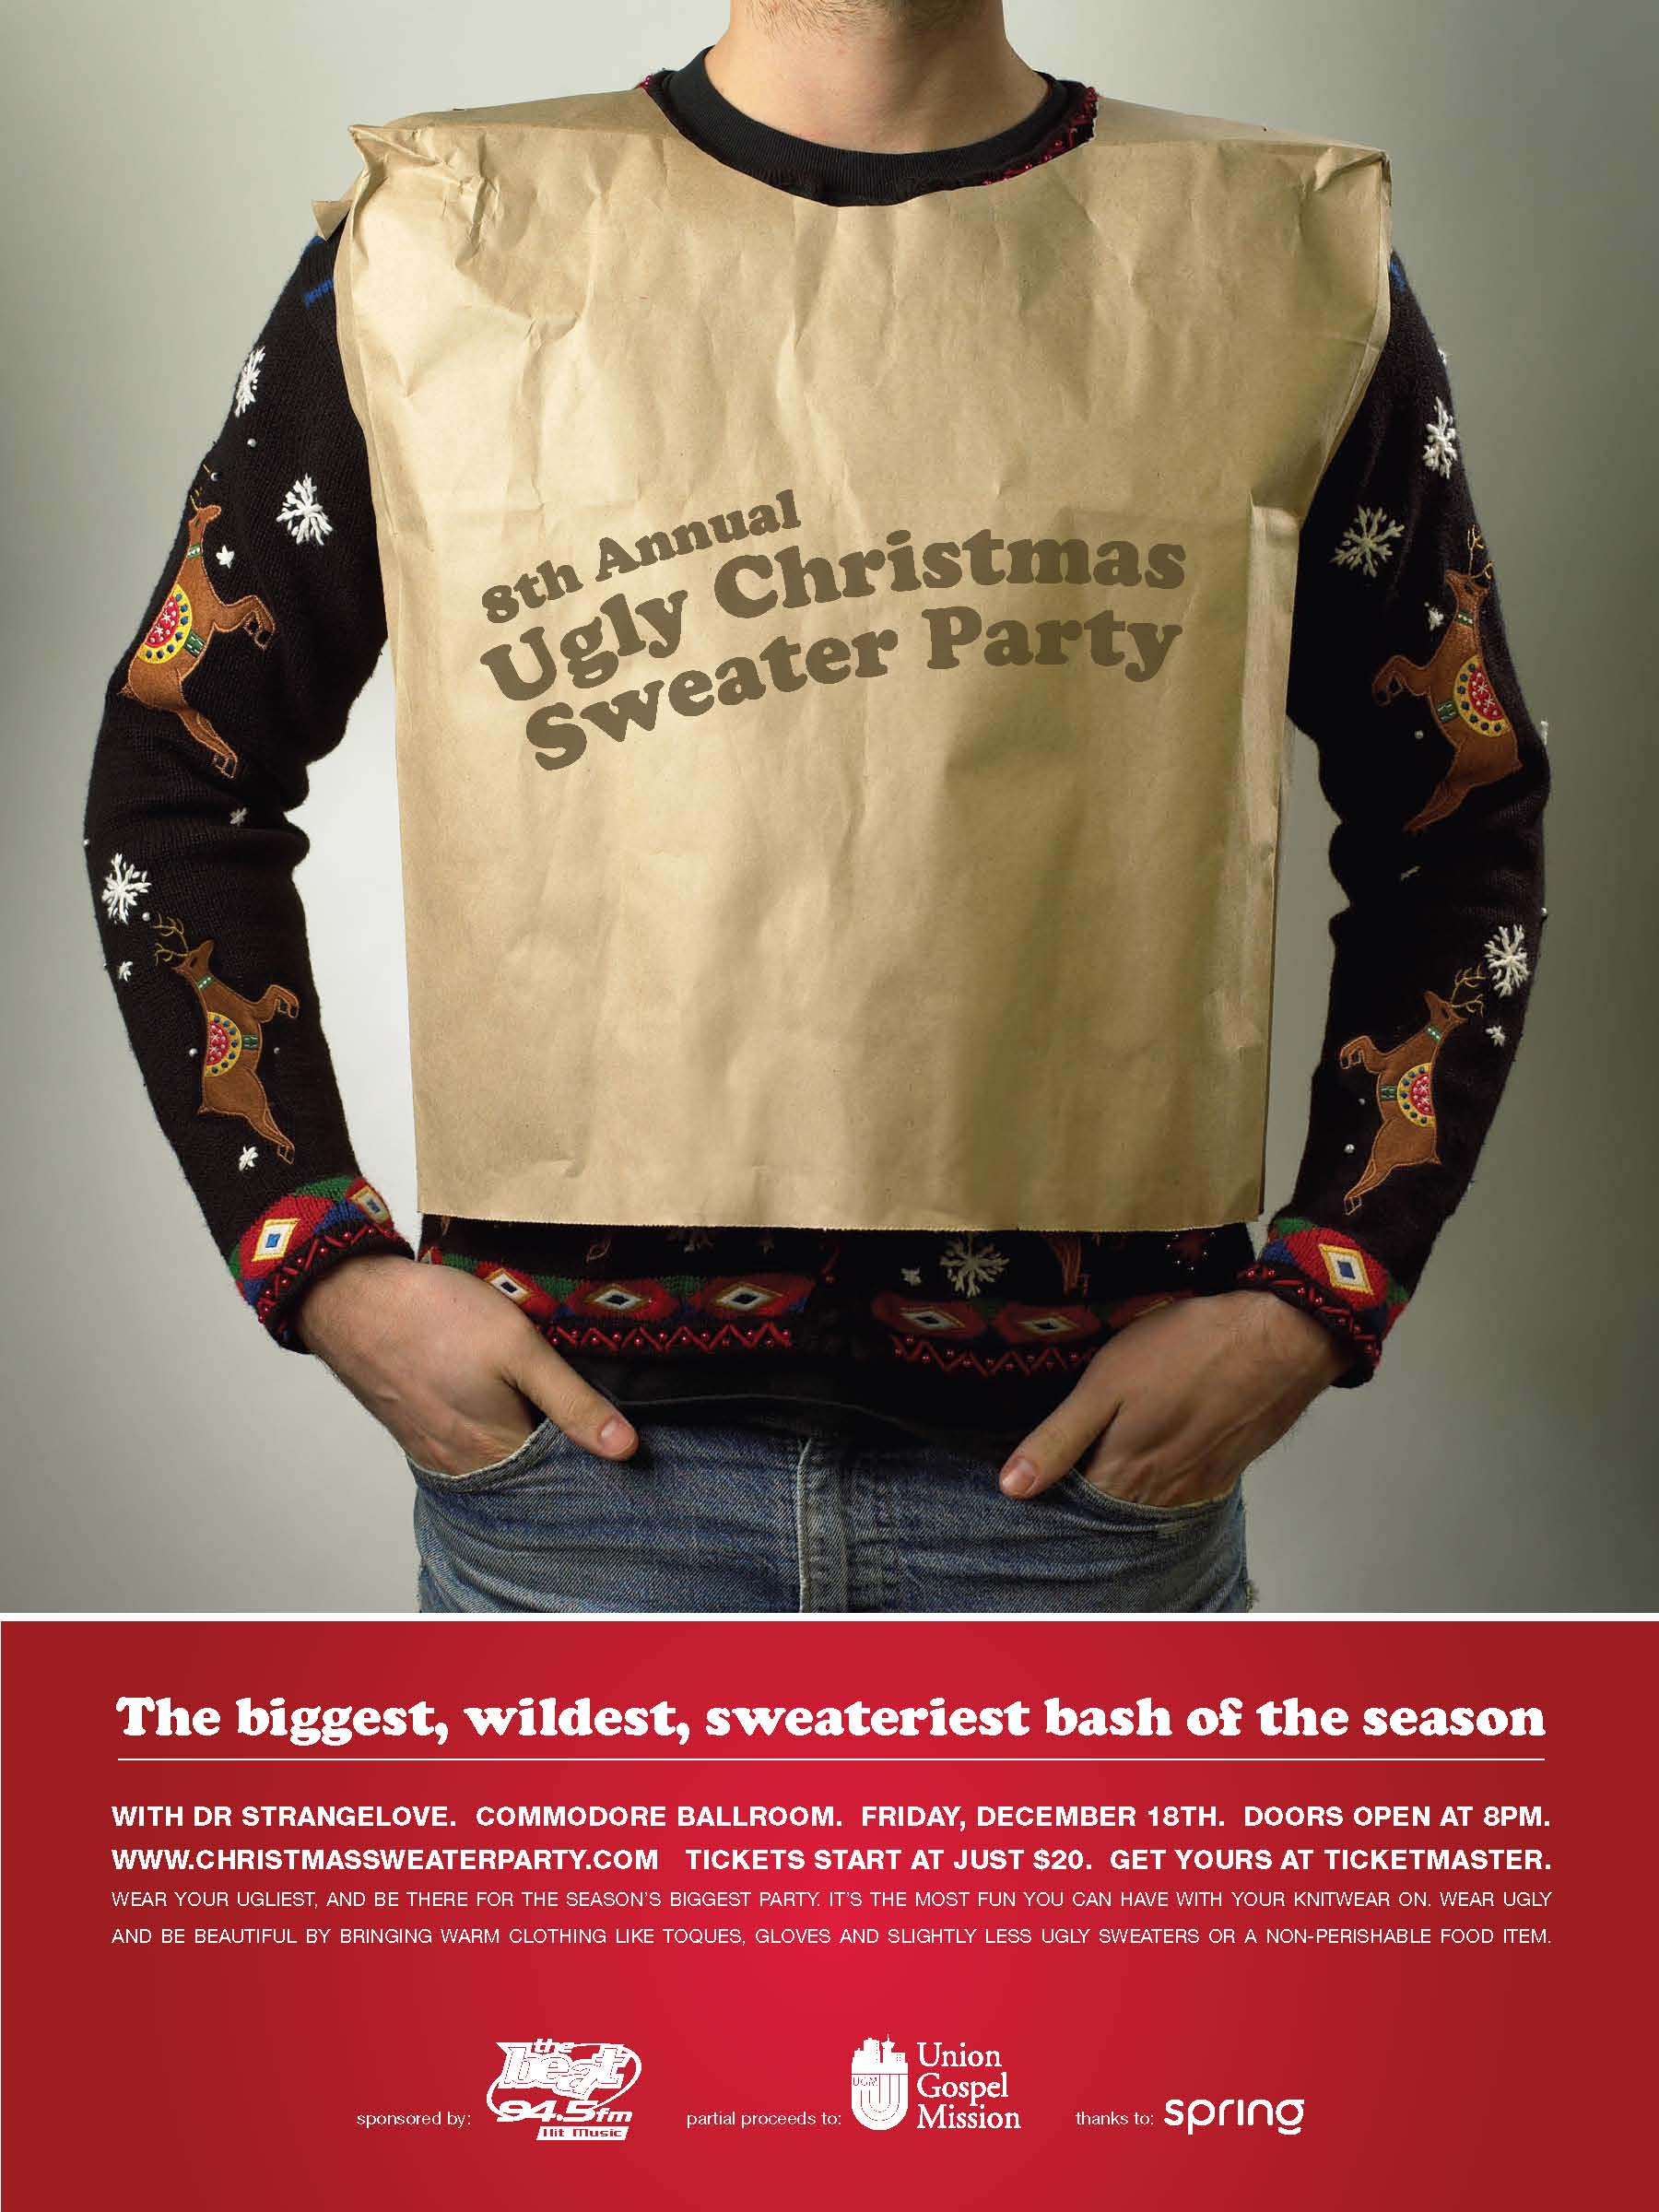 The Original Ugly Christmas Sweater Party Vancouver Canada The